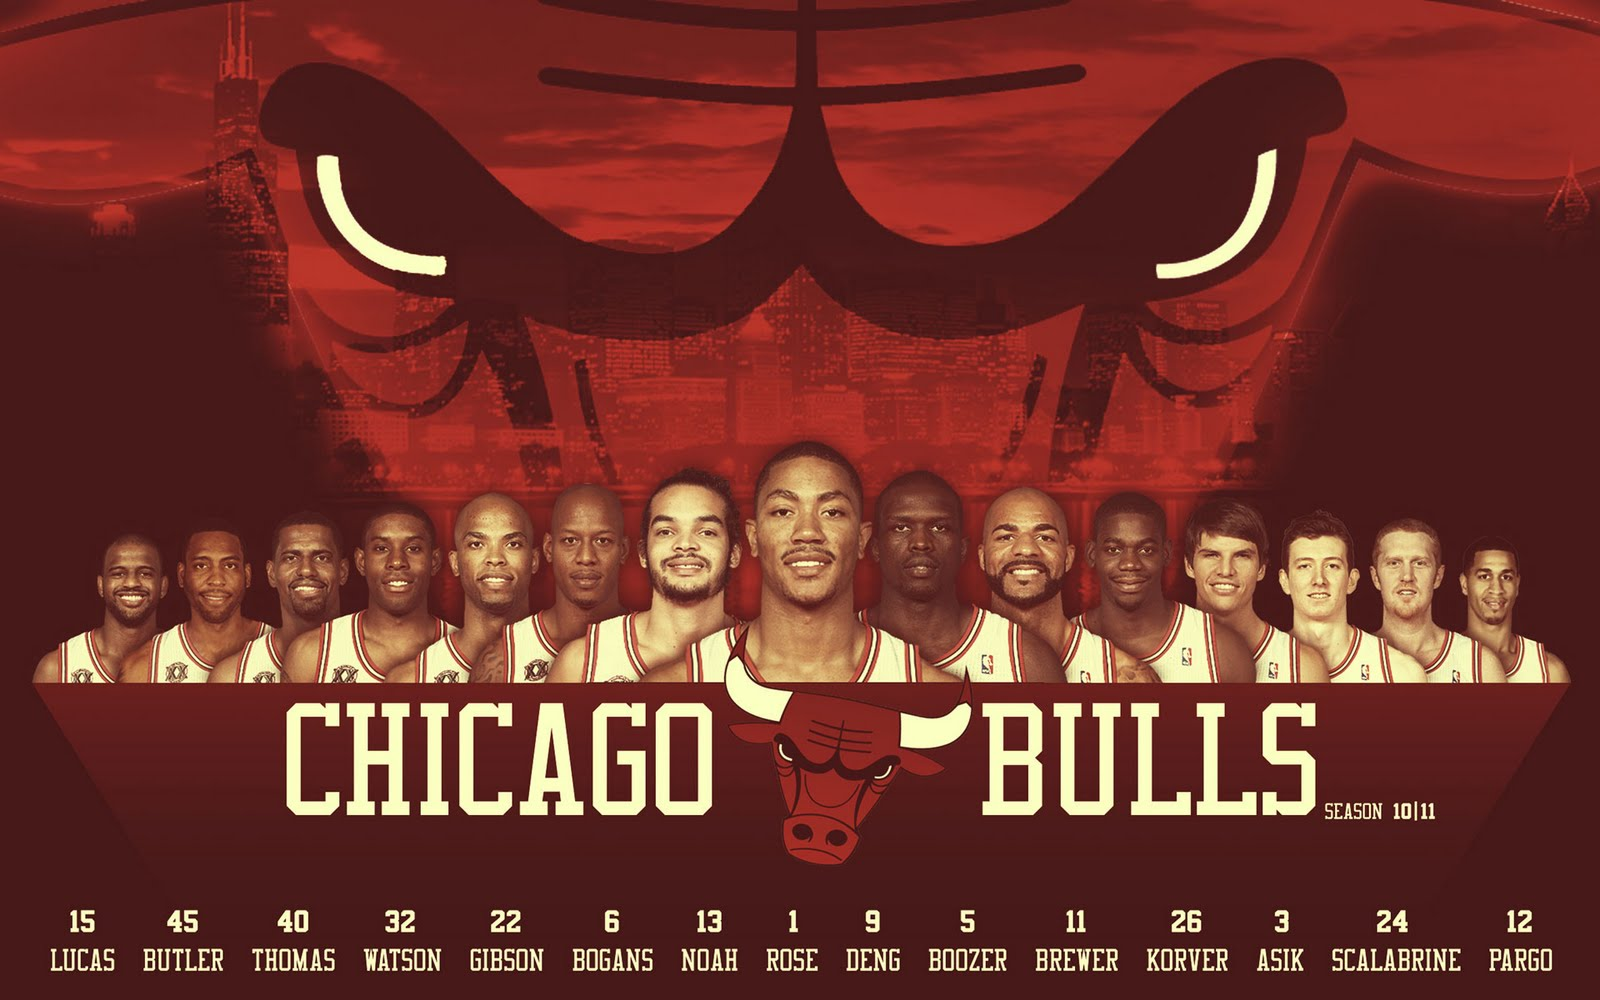 https://1.bp.blogspot.com/-quDIErGJ7A8/TjAMUs-ItII/AAAAAAAAHxg/afievwBlFy0/s1600/Chicago-Bulls-2010-11-Roster-Widescreen-Wallpaper-BasketWallpapers.com-.jpg